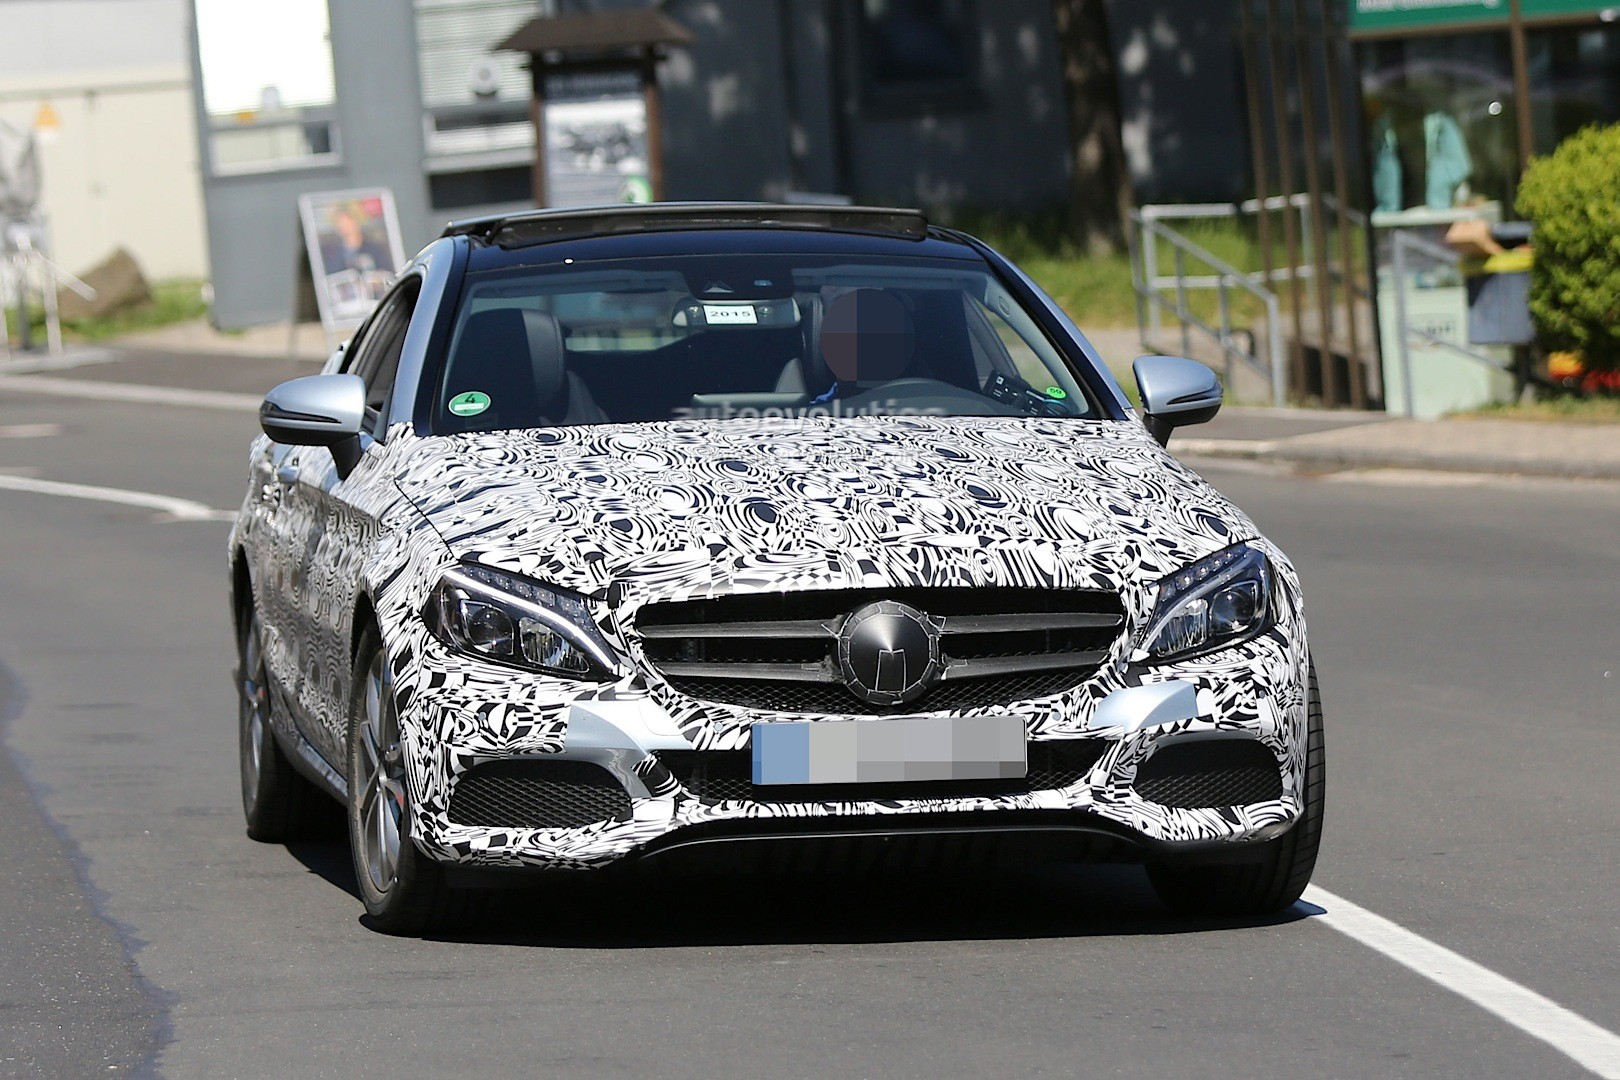 Mercedes S63 Amg Coupe >> Spyshots: All-New Mercedes C-Class Coupe Shows Huge ...